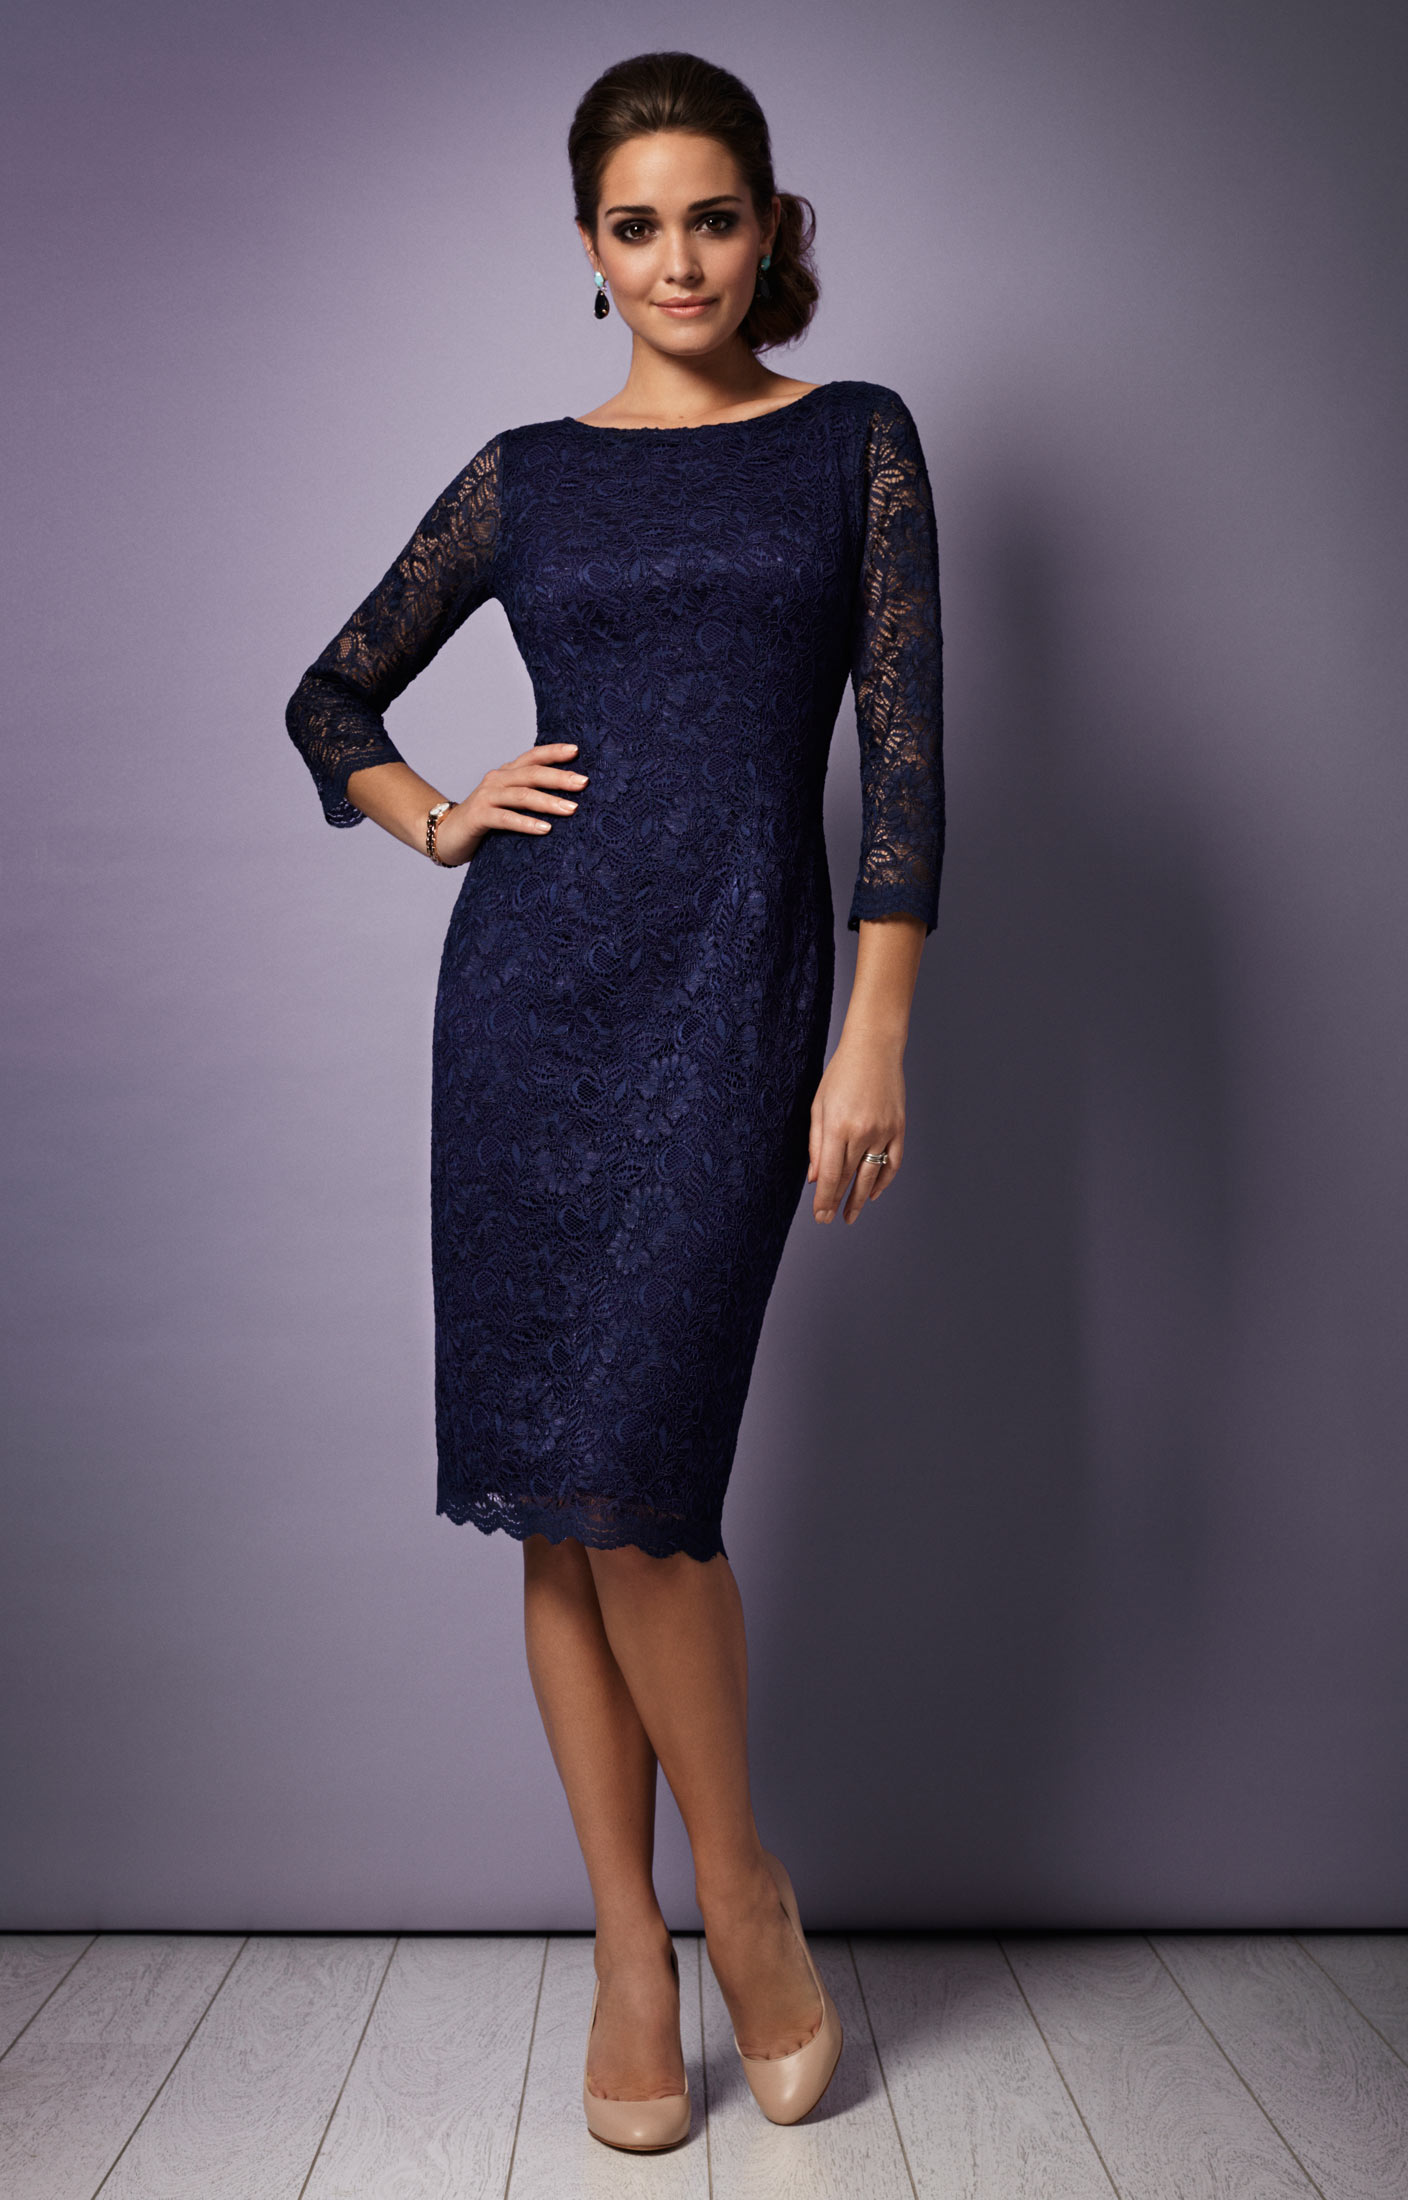 Wedding Occasion Dresses katherine lace occasion dress midnight evening dresses by alie street